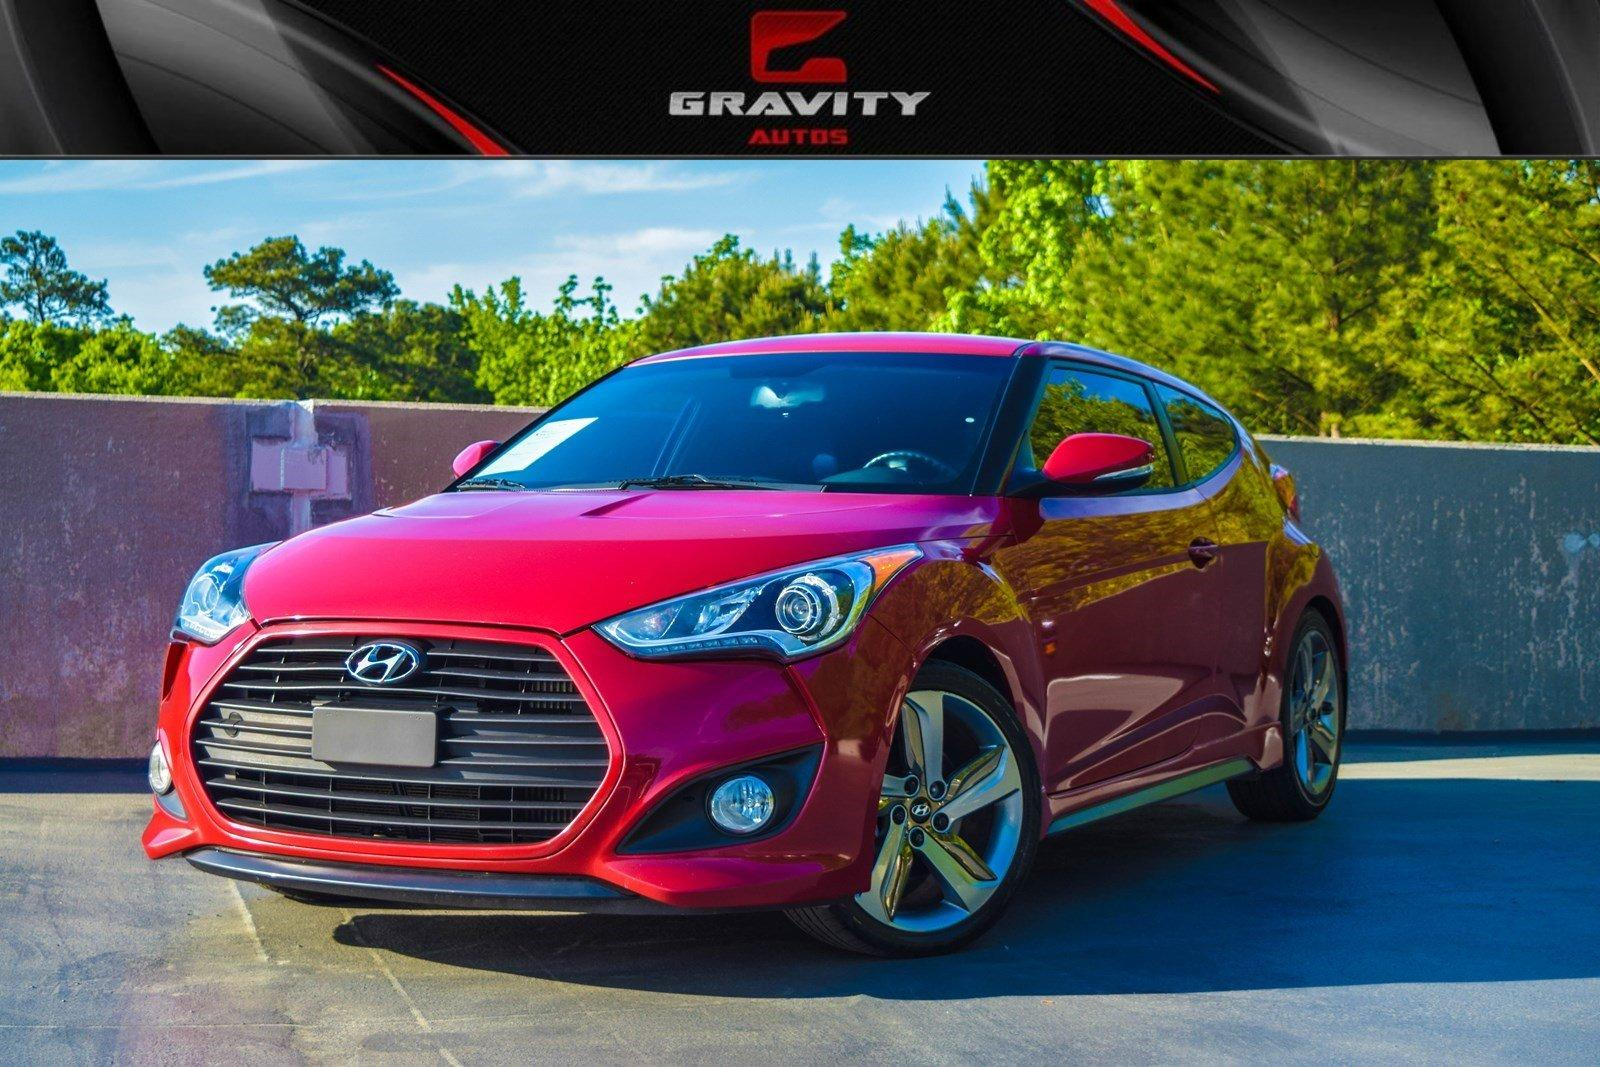 2014 hyundai veloster turbo stock 183157 for sale near. Black Bedroom Furniture Sets. Home Design Ideas